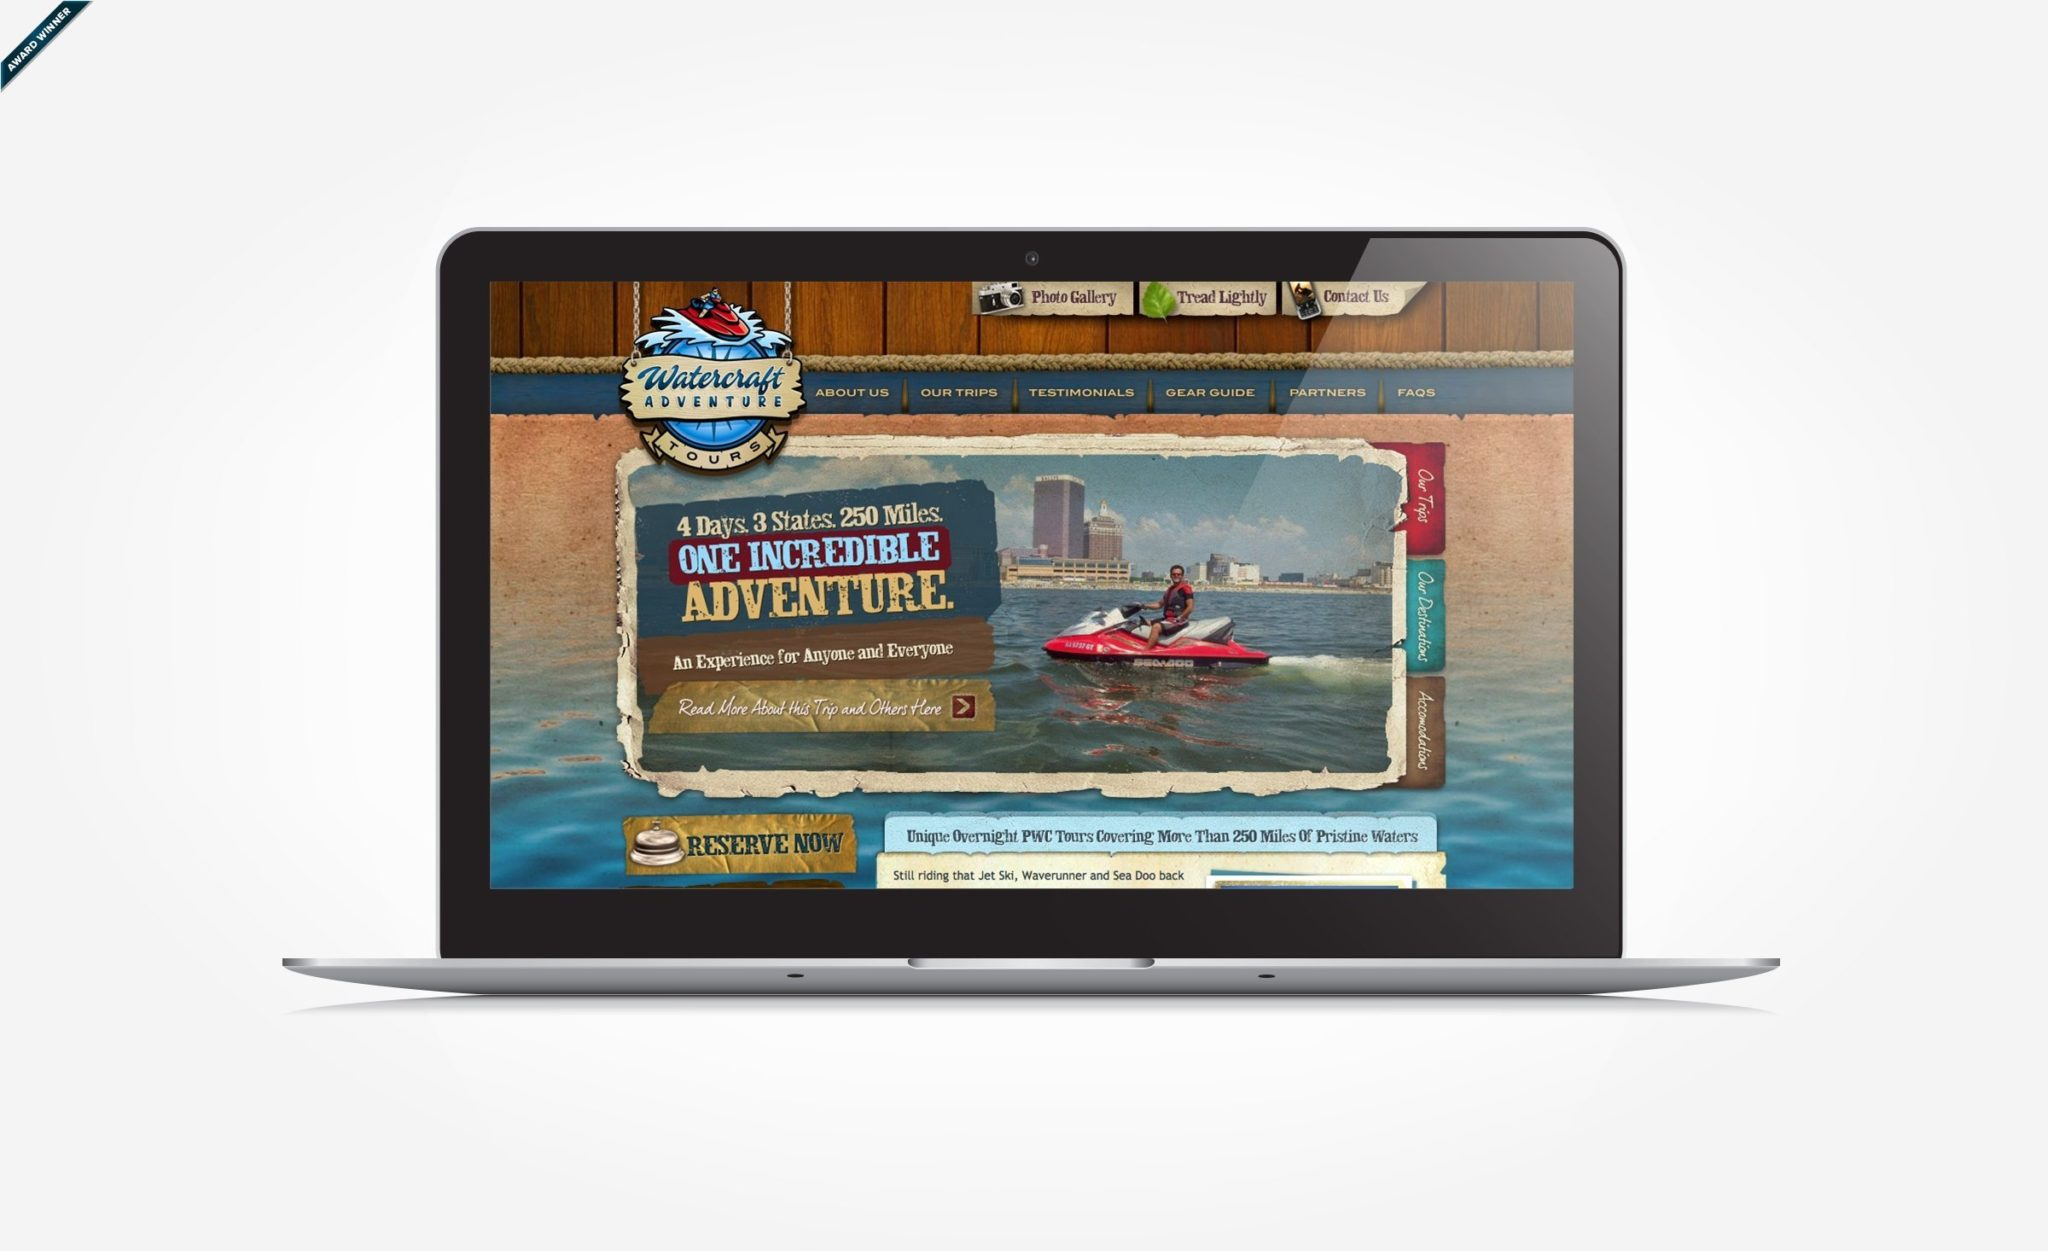 Web design for a watercraft adventure tour based out of NJ.